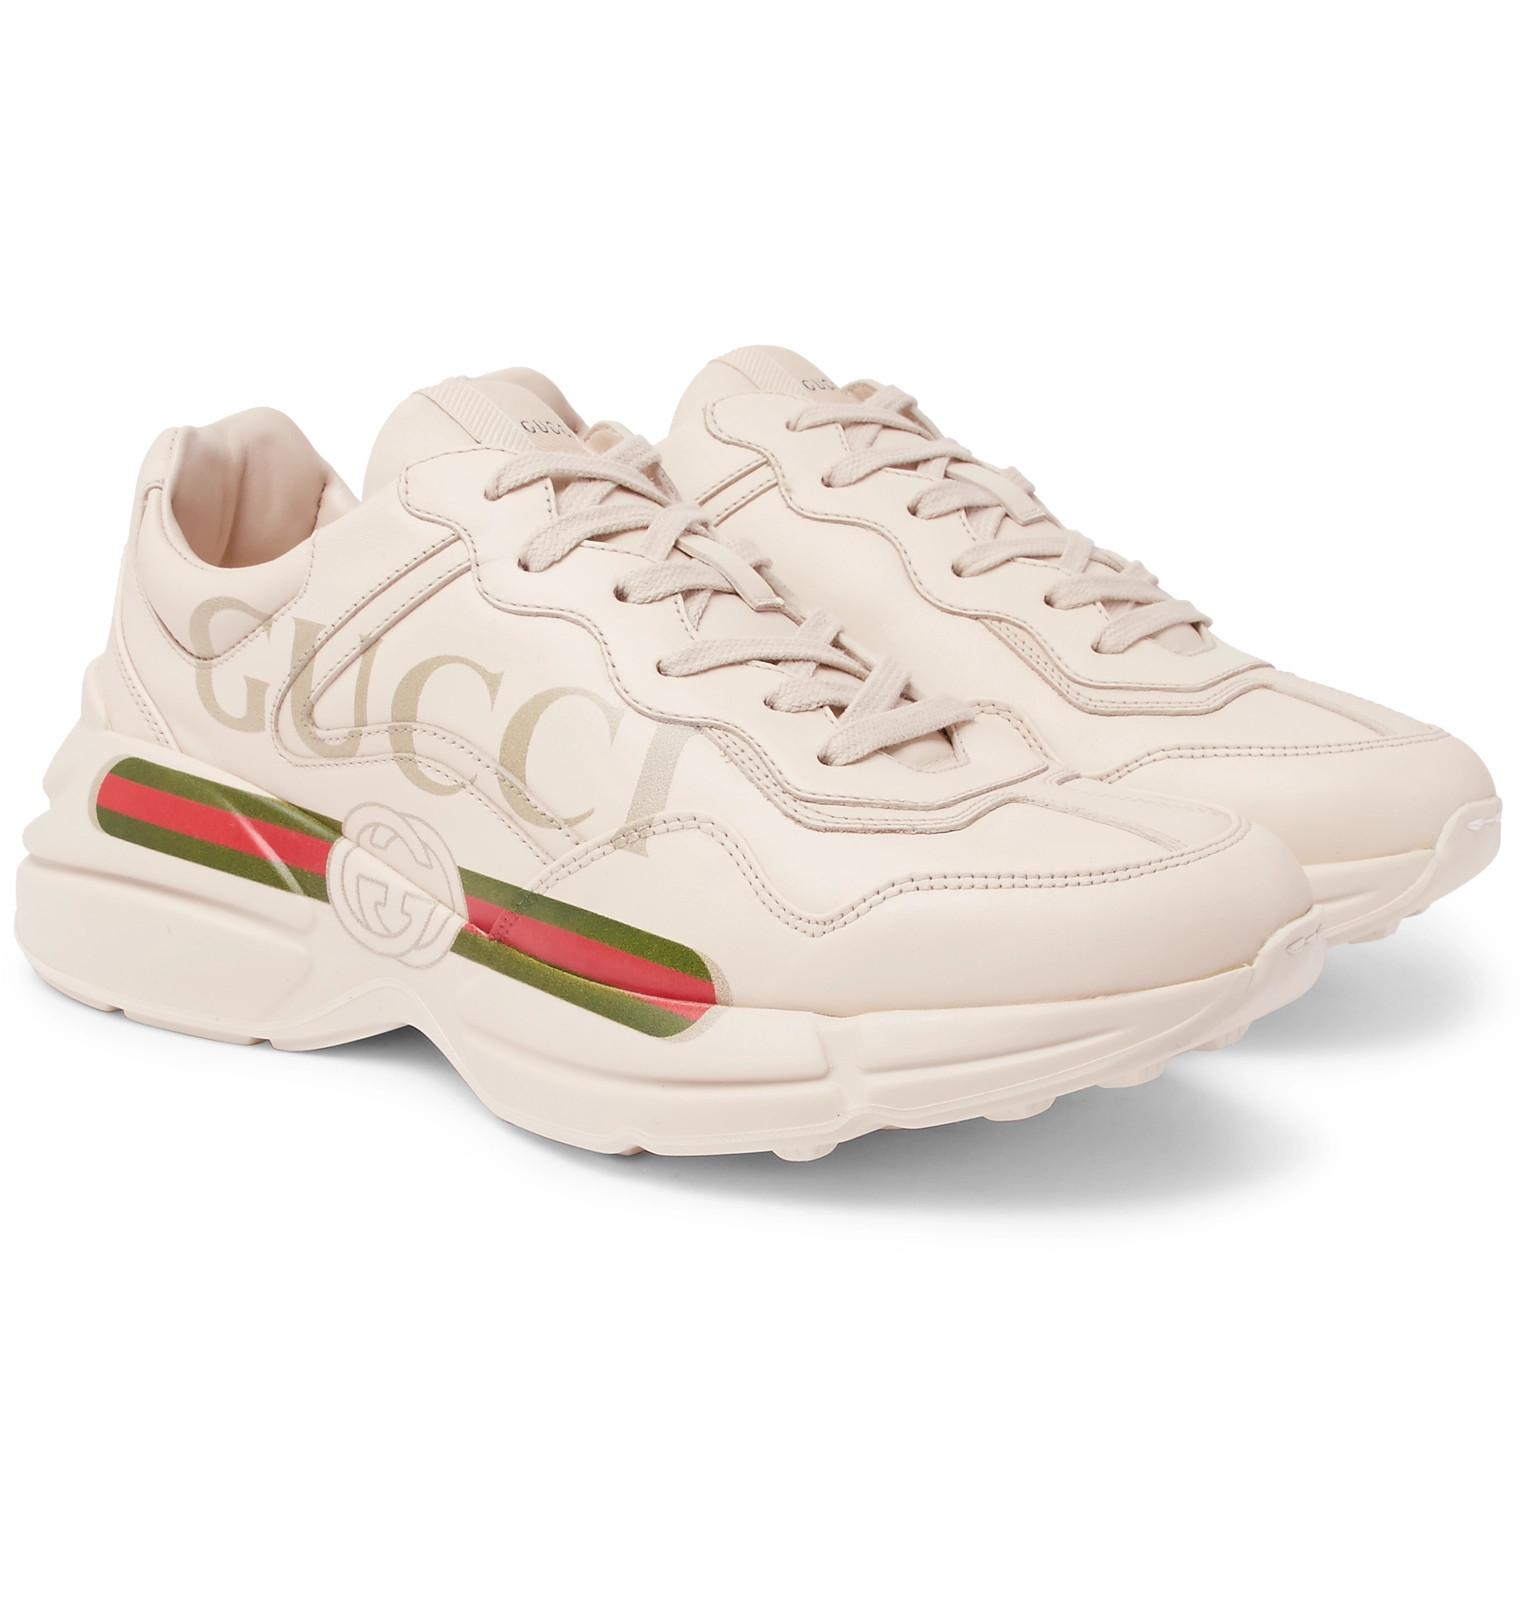 d7f36428a22 Gucci White Rhyton Oversized Leather Sneakers in White for Men ...